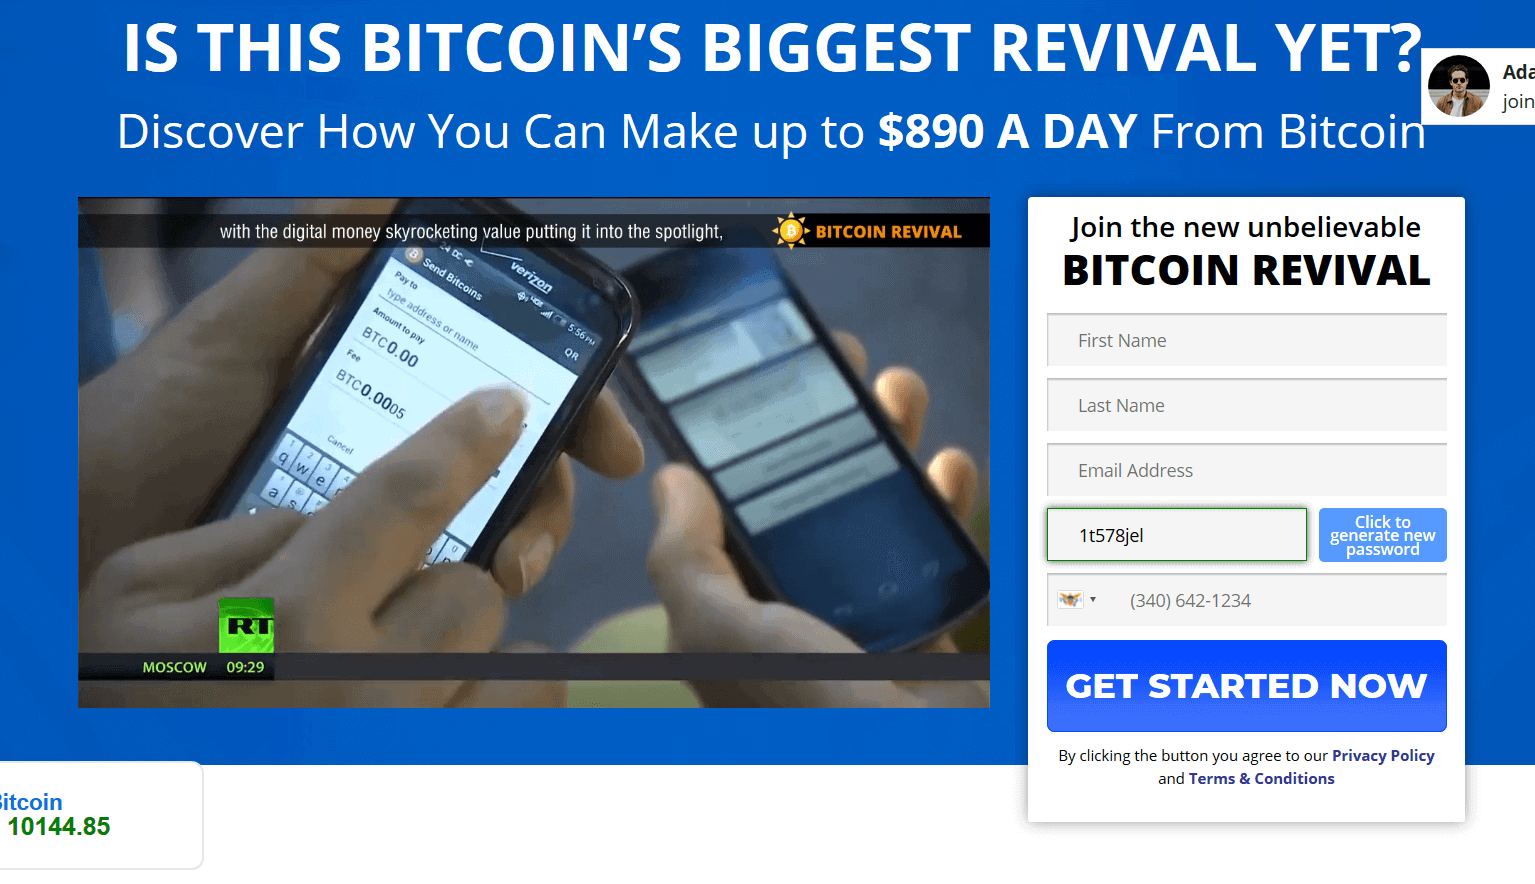 Homepage of Bitcoin Revival